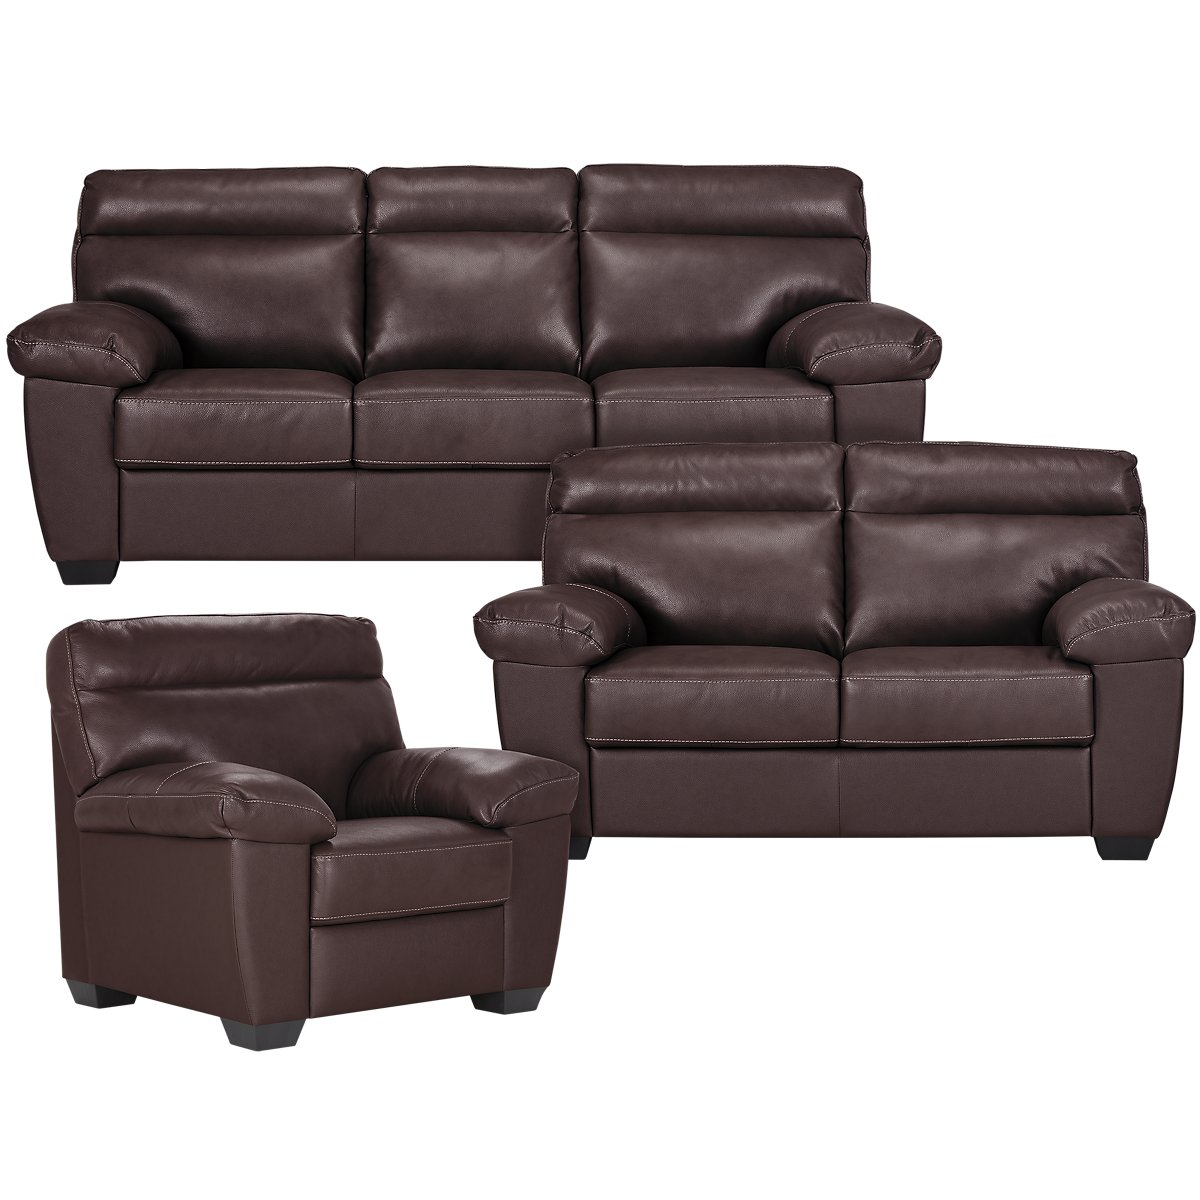 Leather Sofas Devon